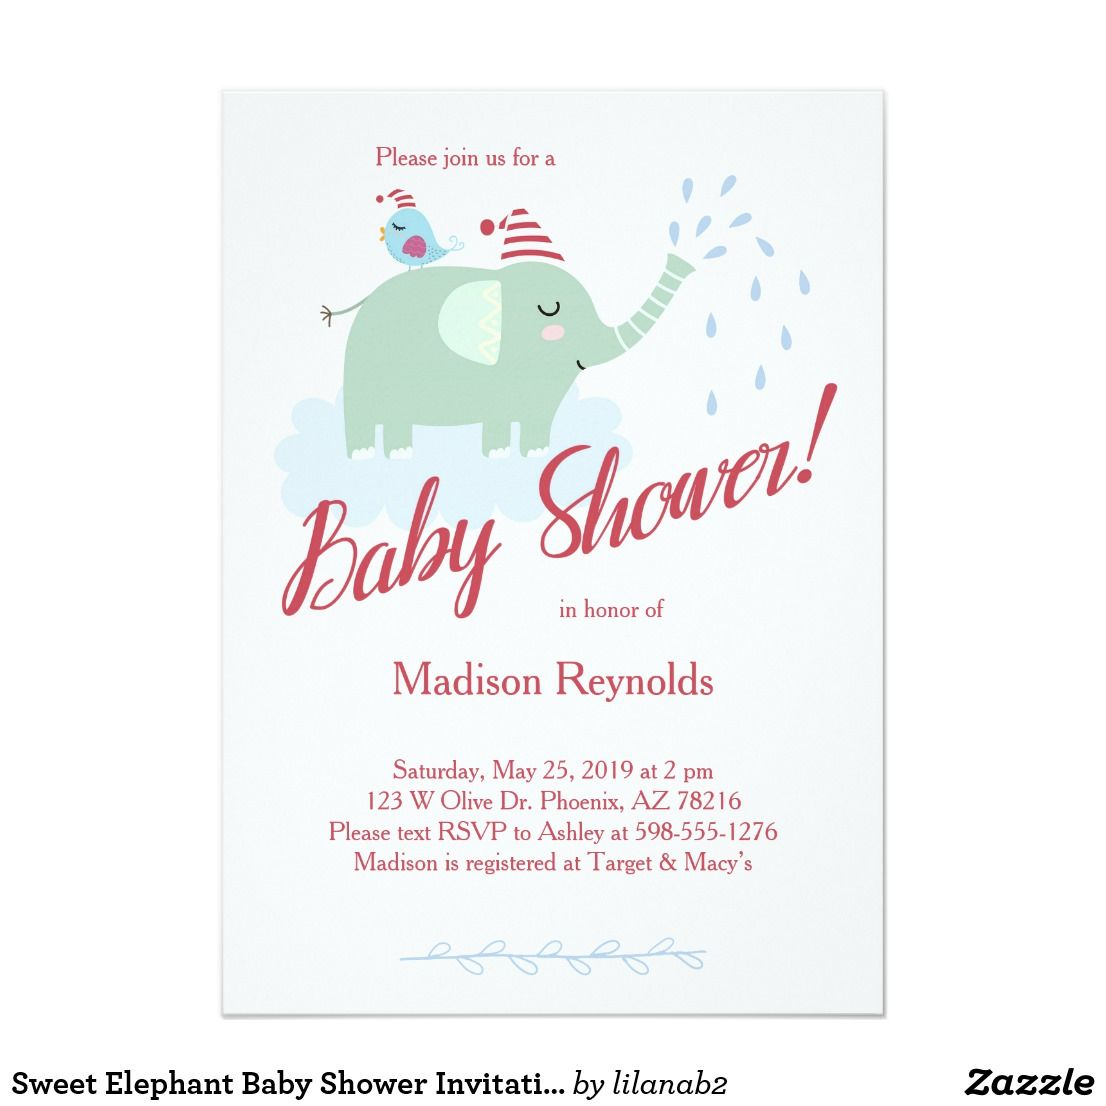 Sweet Elephant Baby Shower Invitation Elephant Illustration